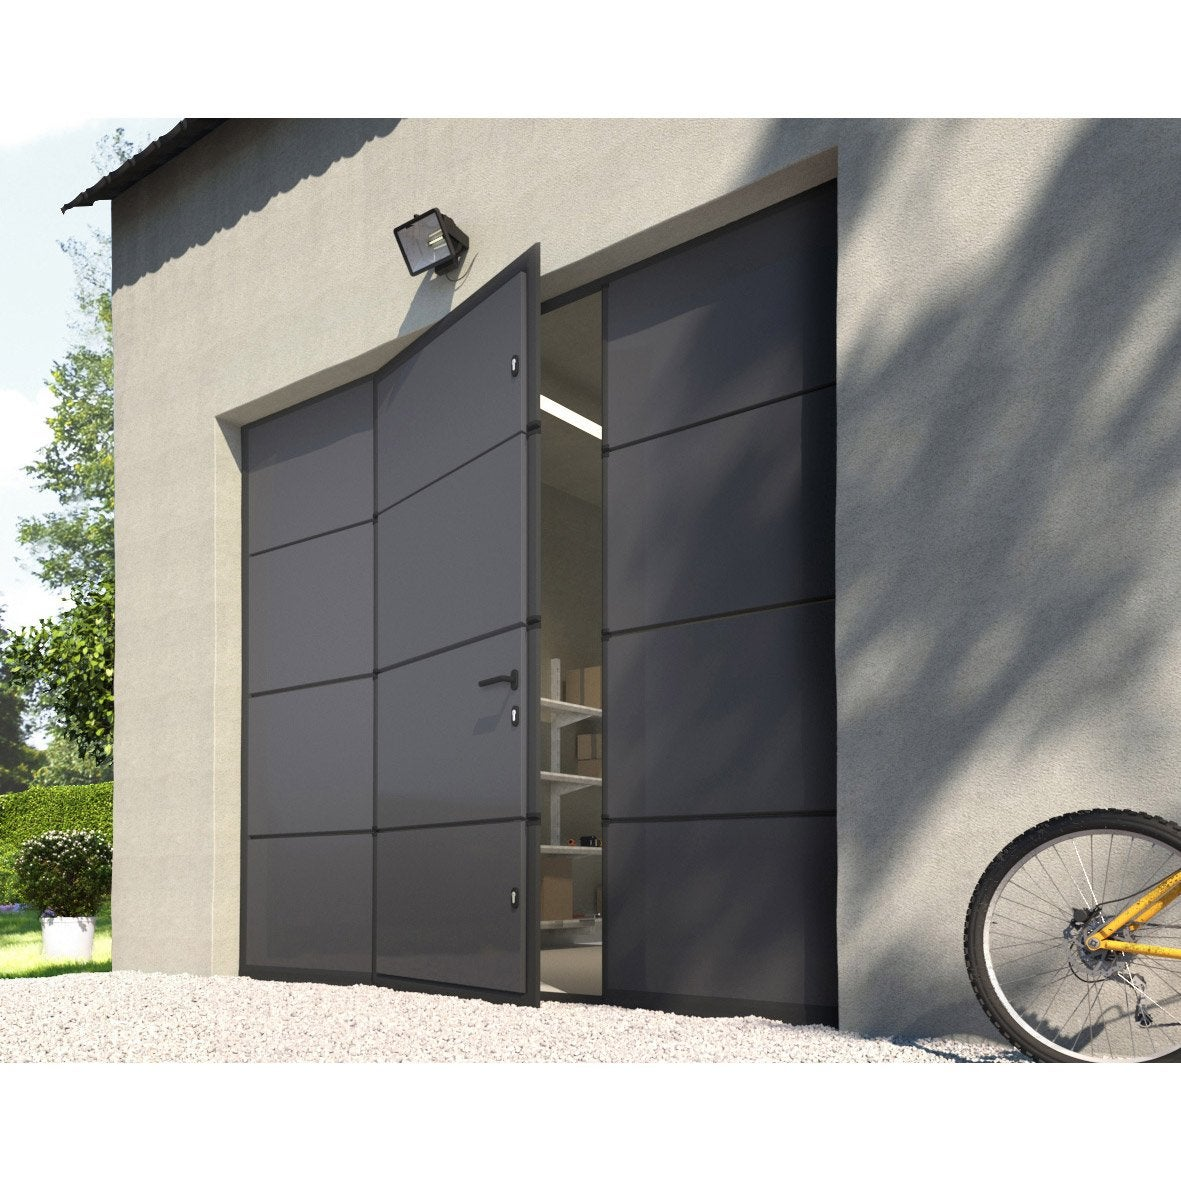 Porte de garage sectionnelle motoris e artens essentiel 200x240cm avec portillon leroy merlin - Porte de garage motorisee somfy ...